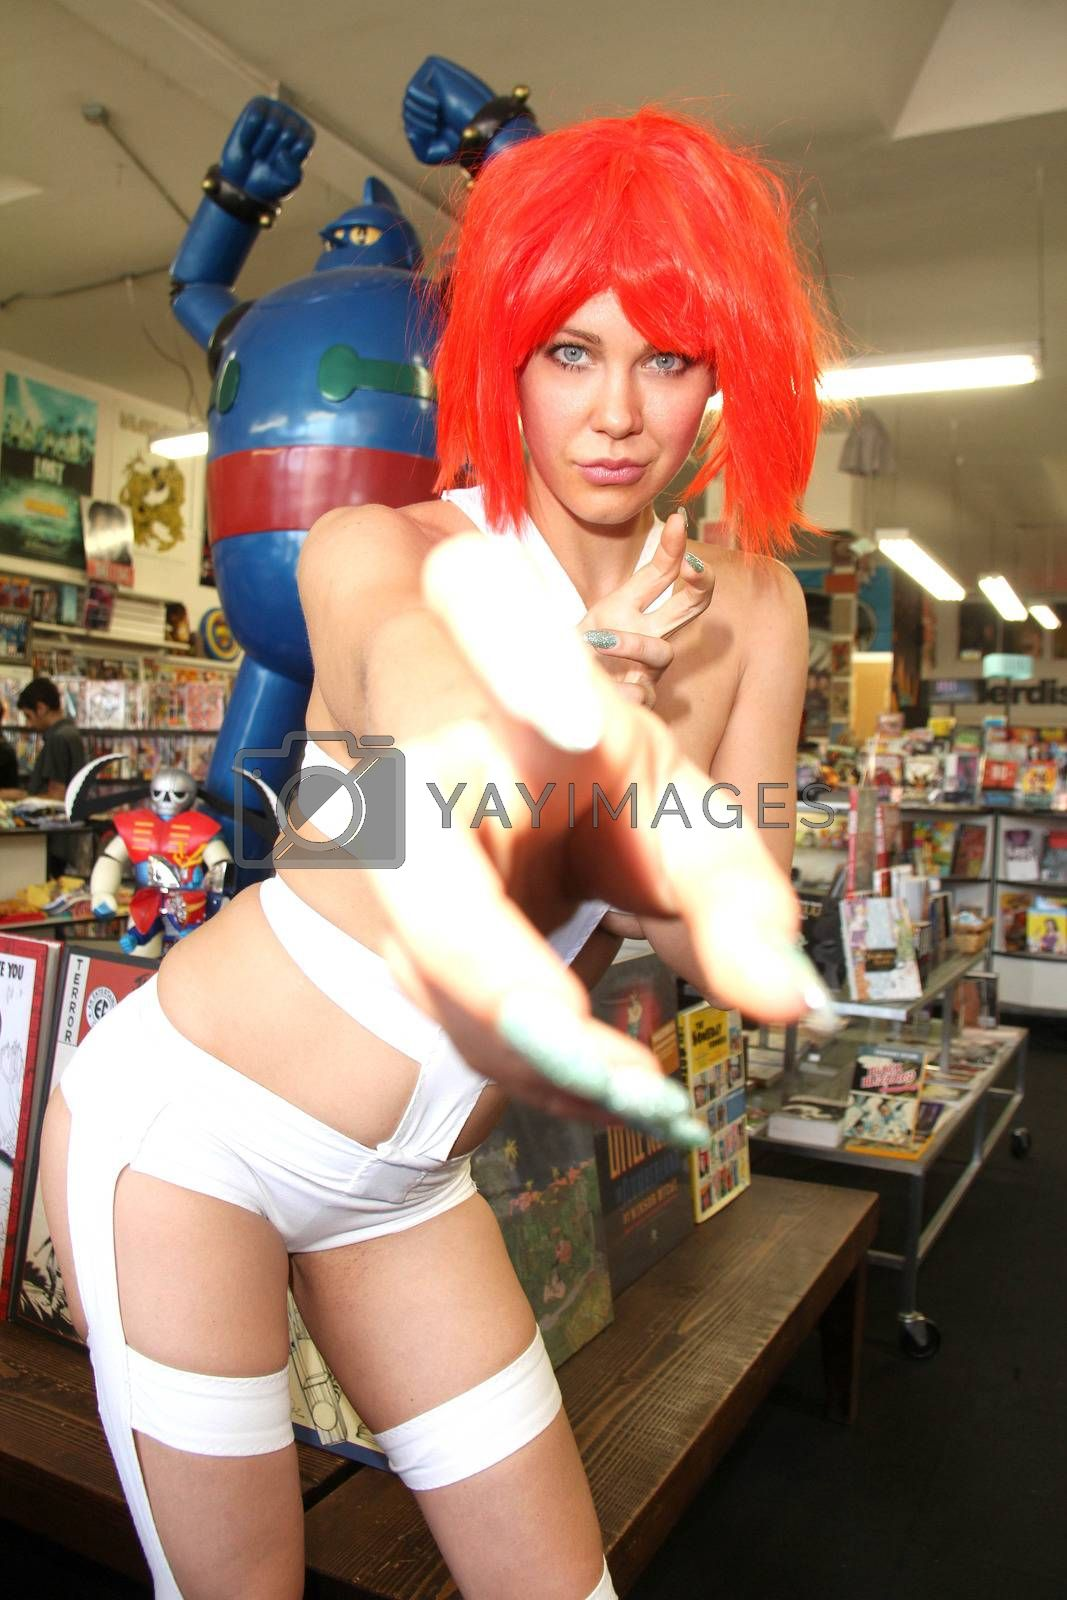 """Maitland Ward trying out her """"Leeloo"""" costume from the Fifth Element before going to Long Beach Comic-Con, Meltdown Comics, Los Angeles, CA 05-31-14/ImageCollect by ImageCollect"""